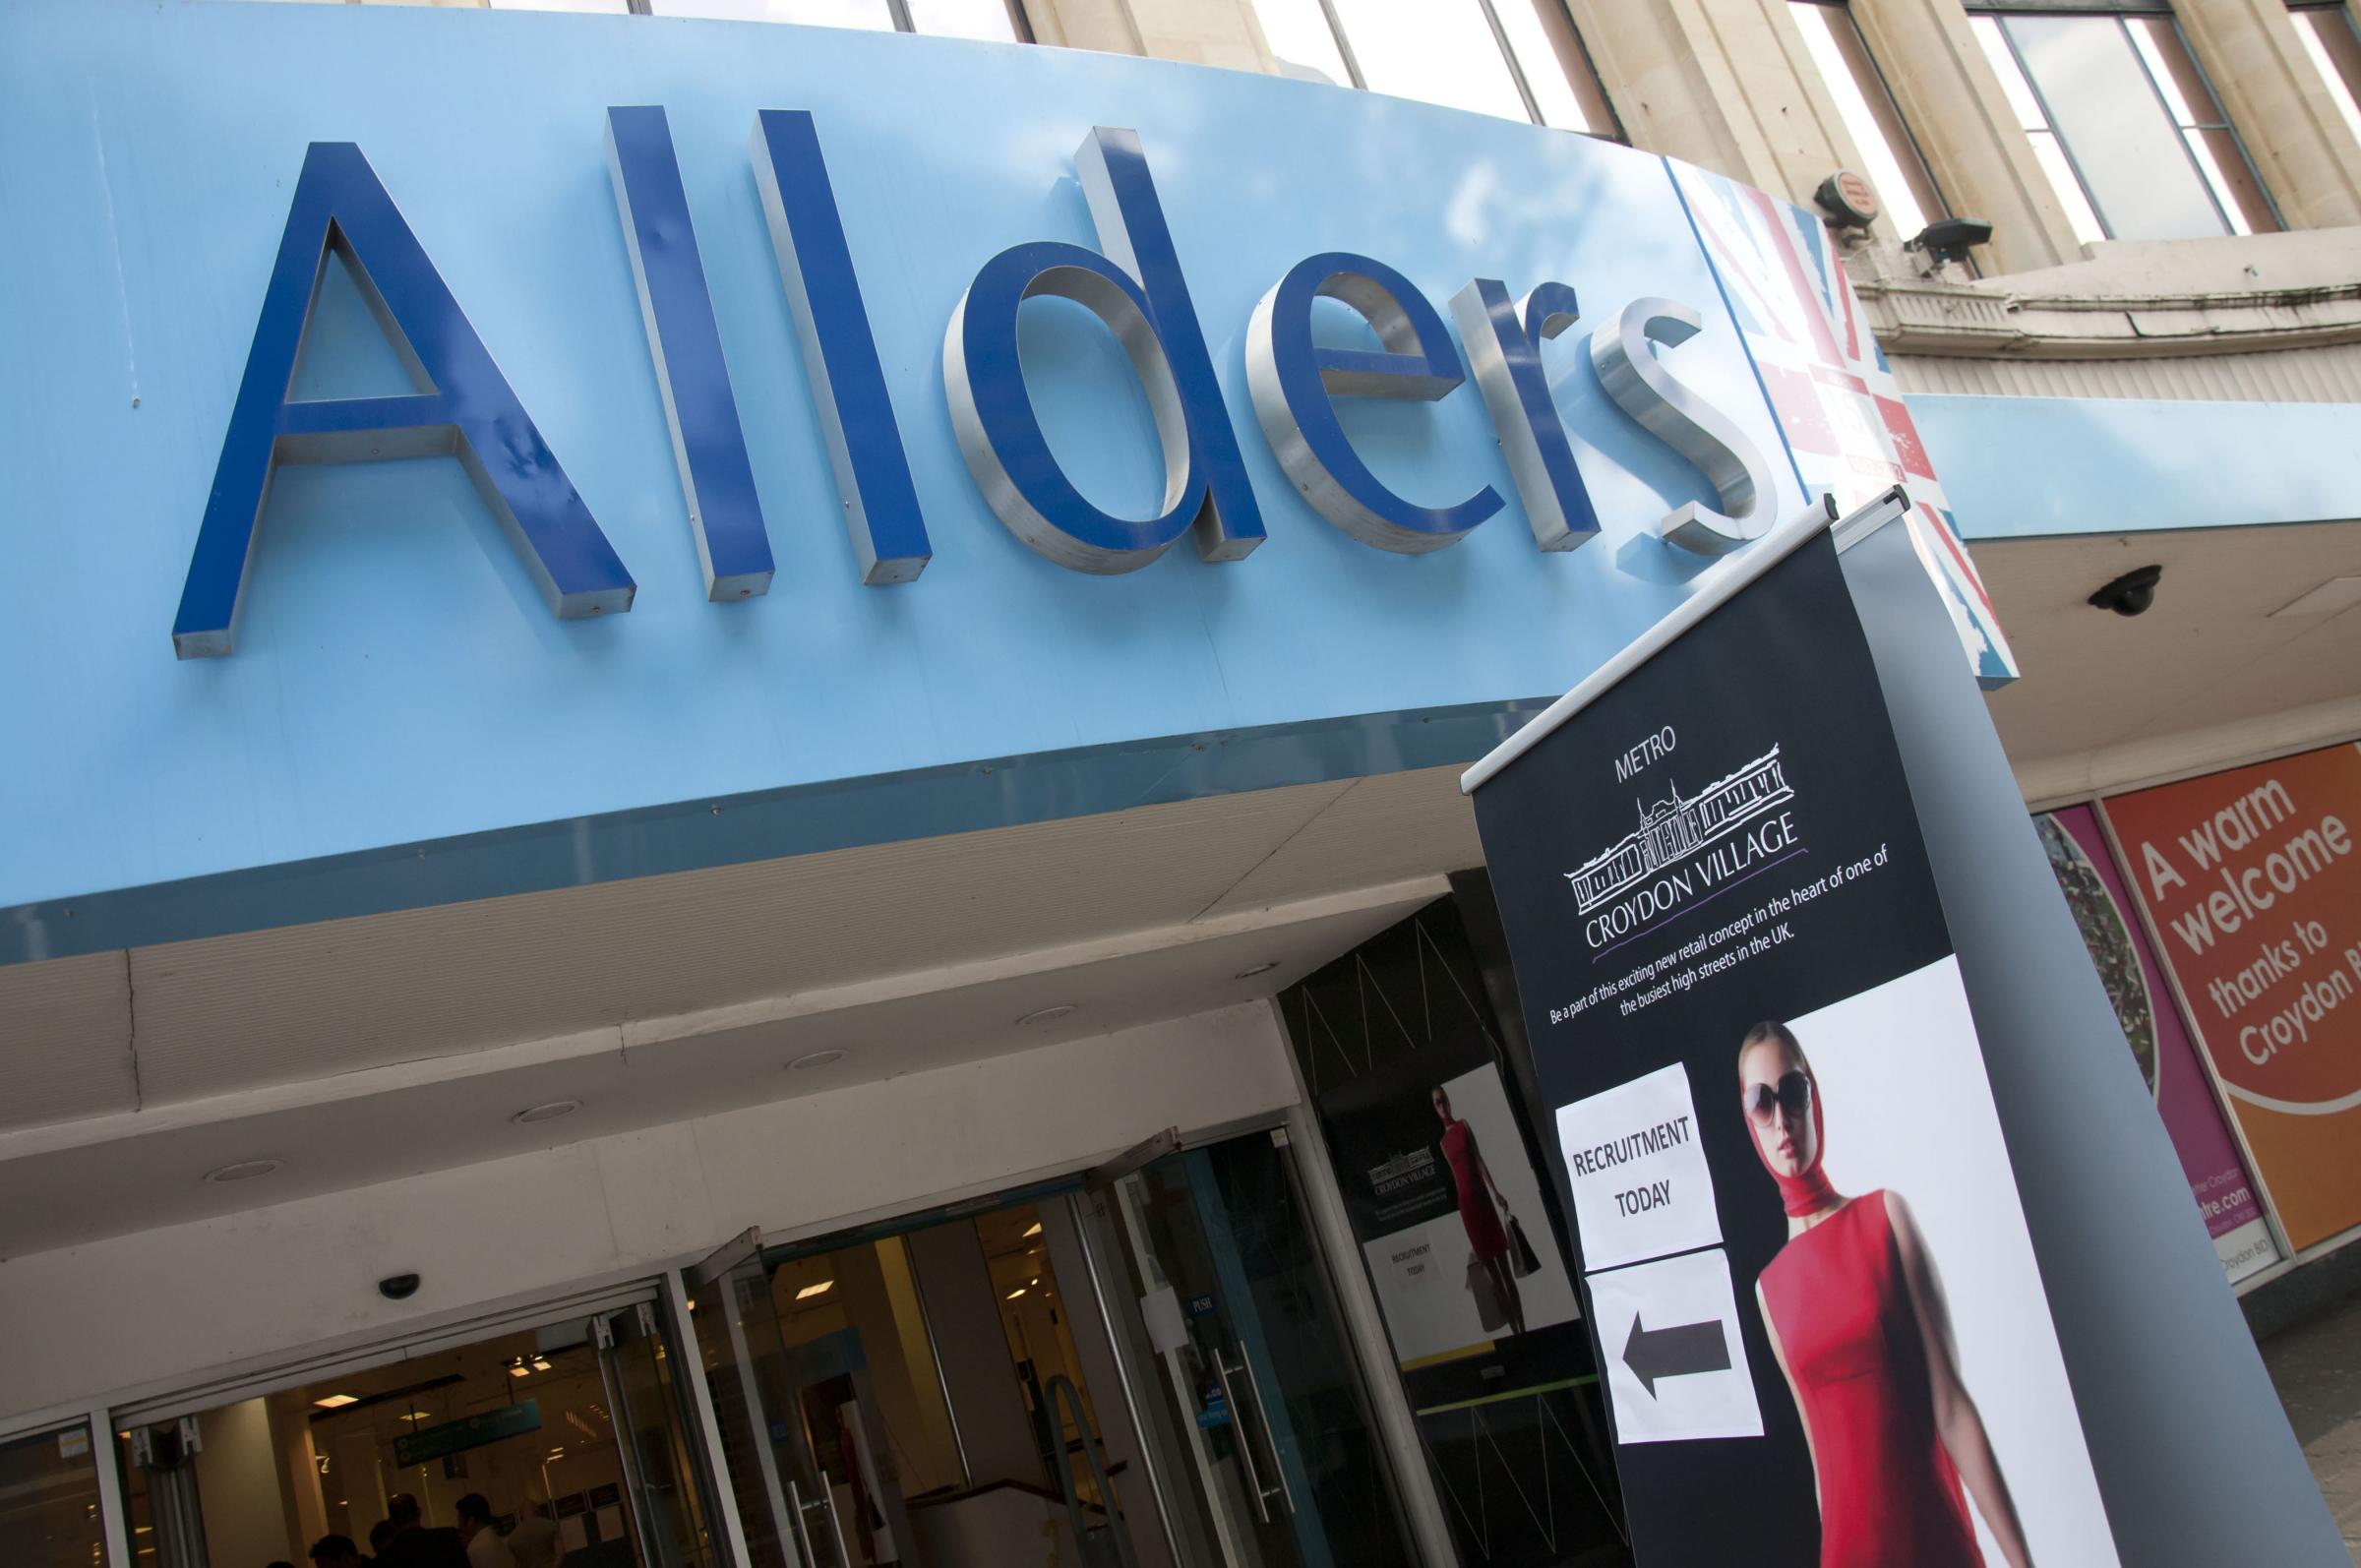 Croydon Village will be based in the former Allders building